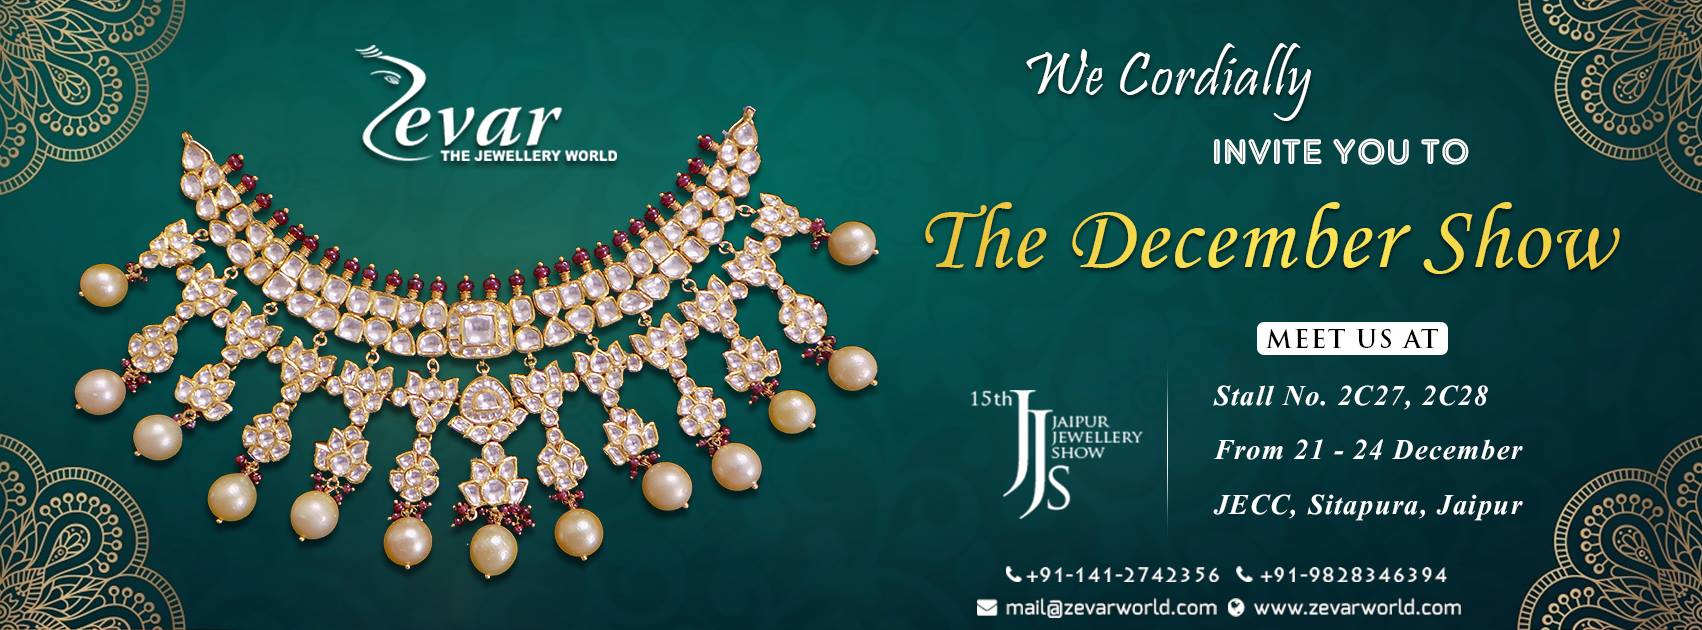 Jaipur Jewellery Show - Zevar The Jewellery World